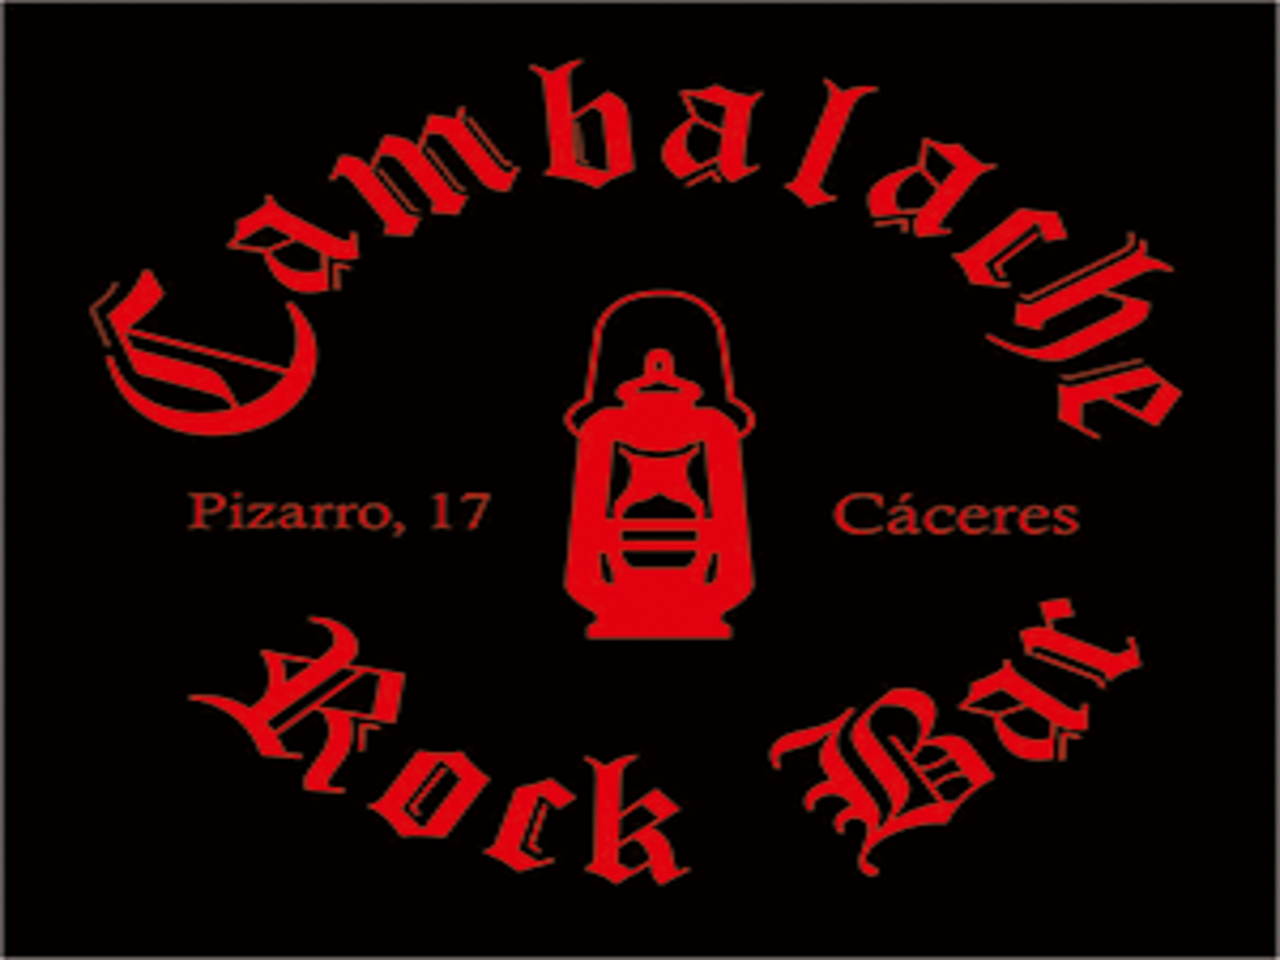 CAMBALACHE ROCK BAR